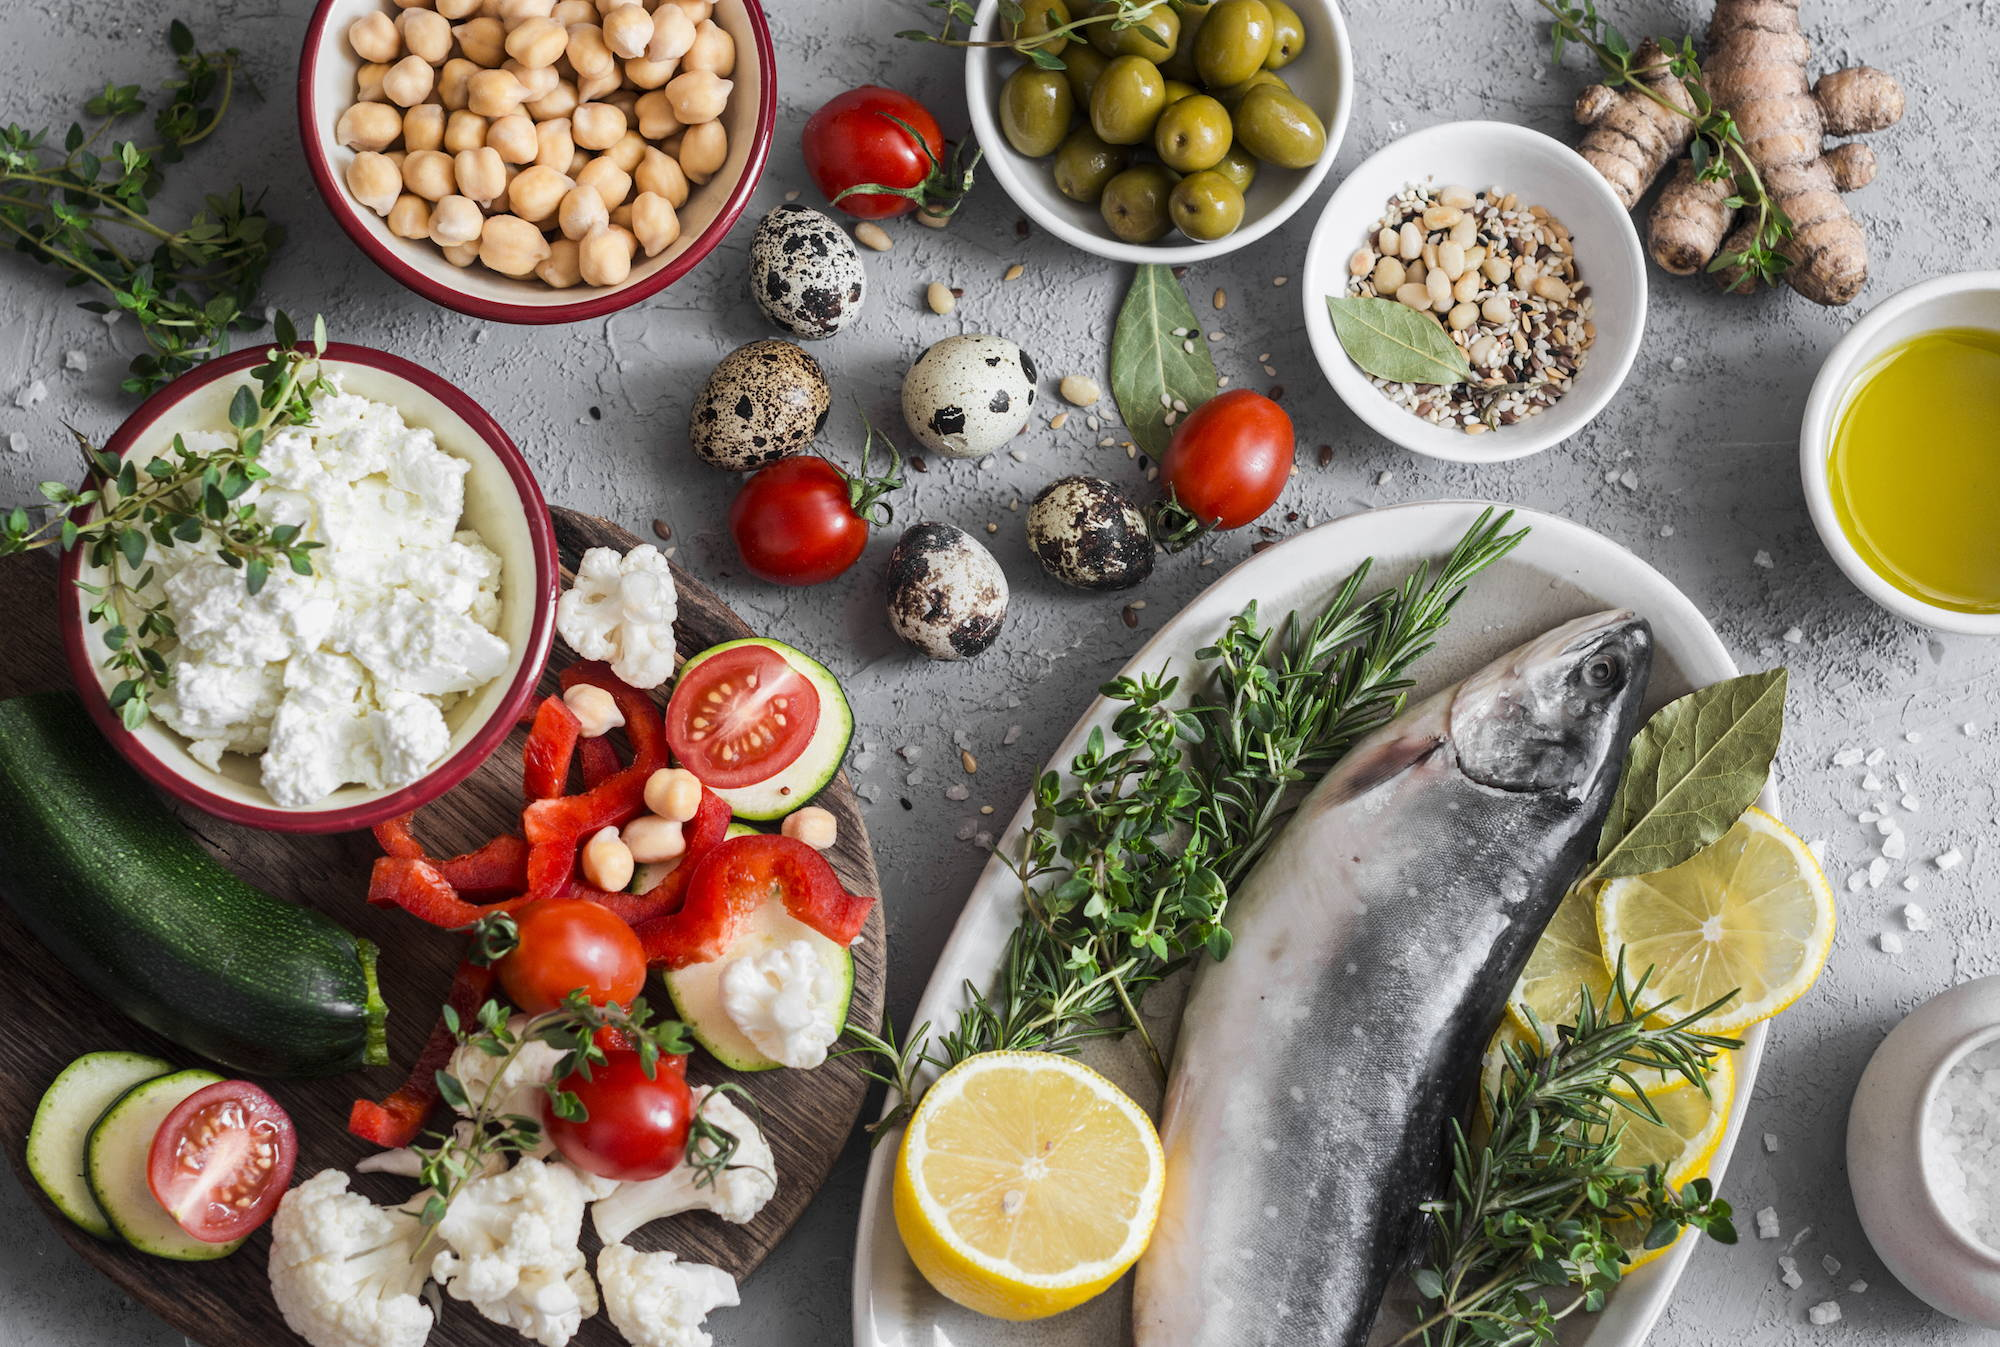 A Mediterranean type diet is recommended when trying to conceive